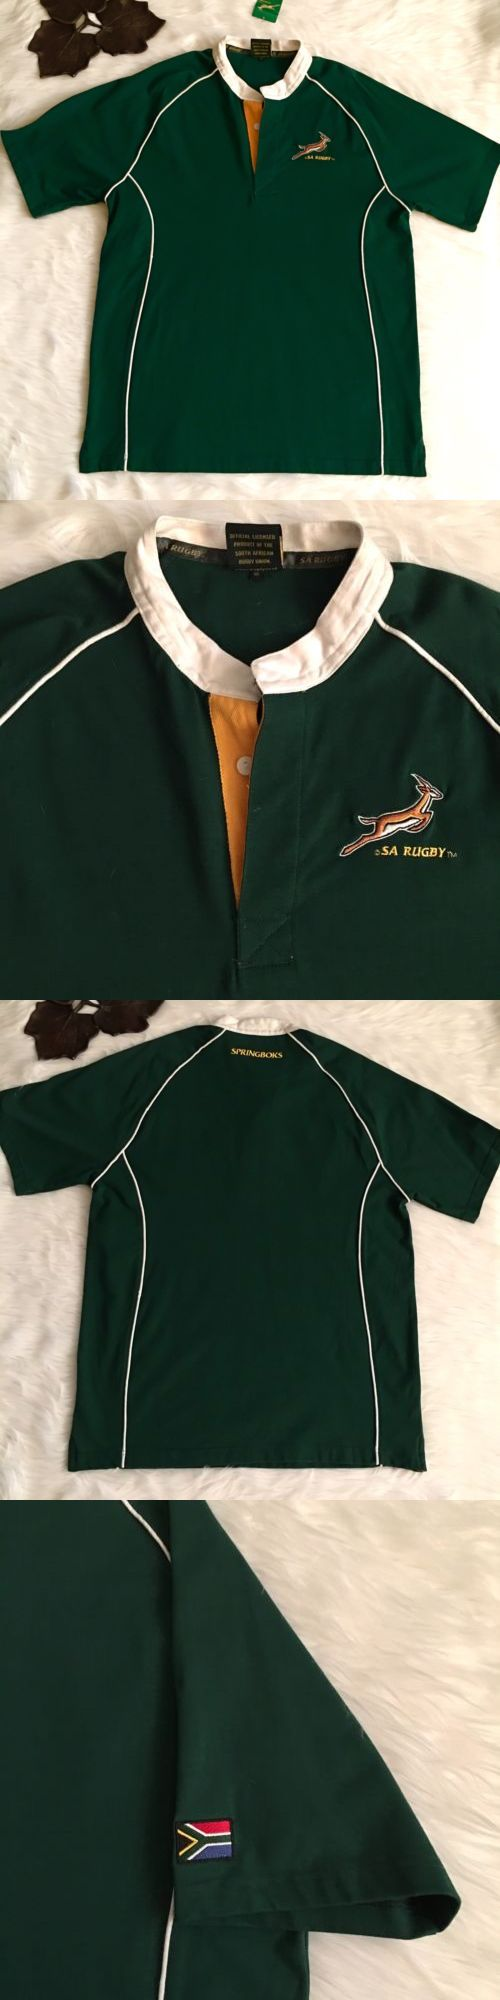 Rugby 21563: Men S Sa Rugby Xl South Africa Springboks Home Official Polo Jersey Shirt Ss Nwt -> BUY IT NOW ONLY: $44.95 on eBay!